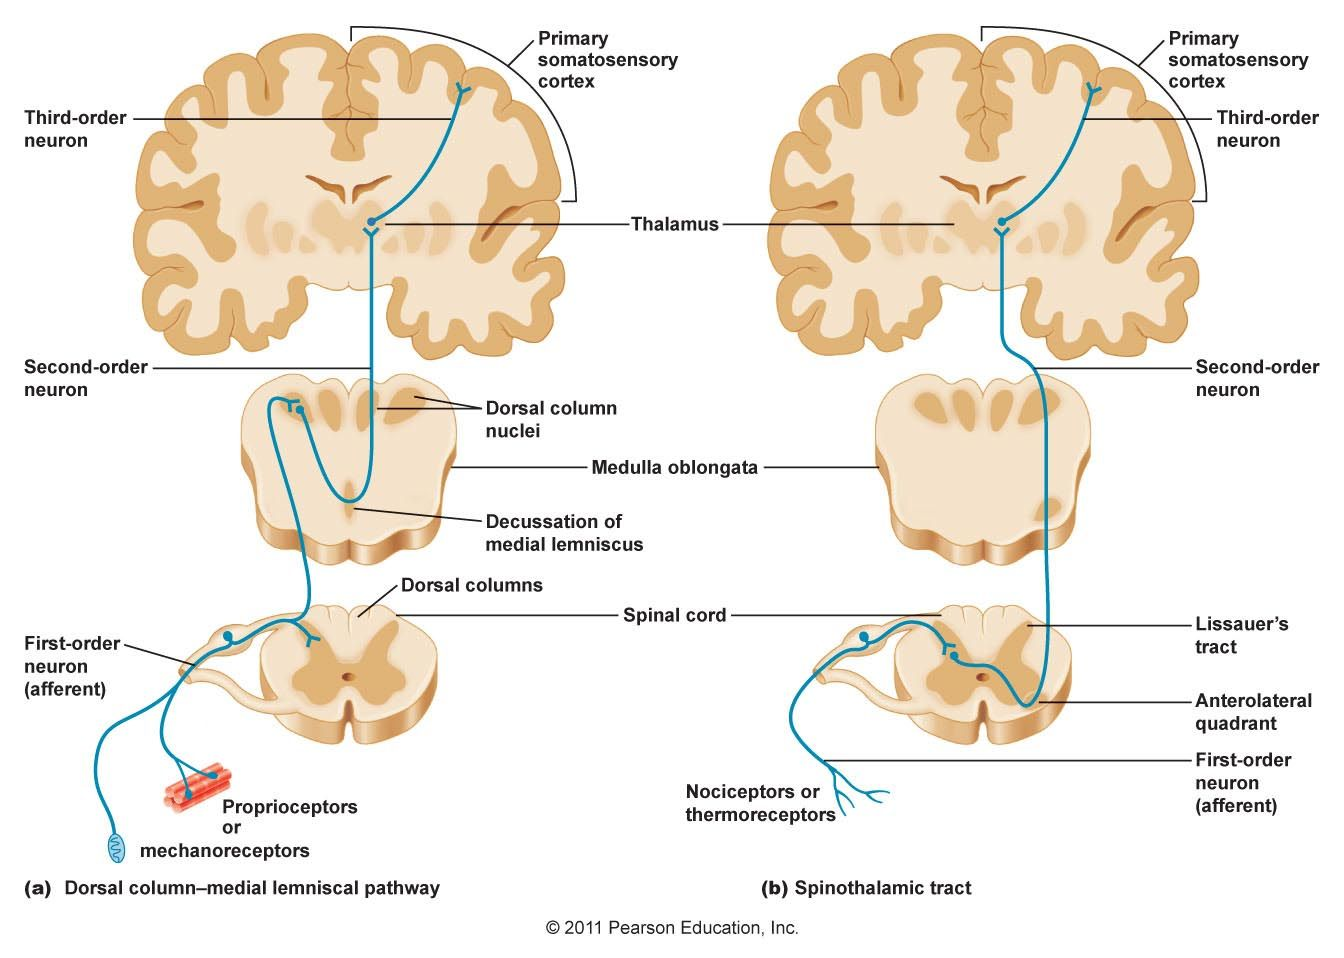 hight resolution of dorsal column medial lemnisclal pathway and spinothalamic